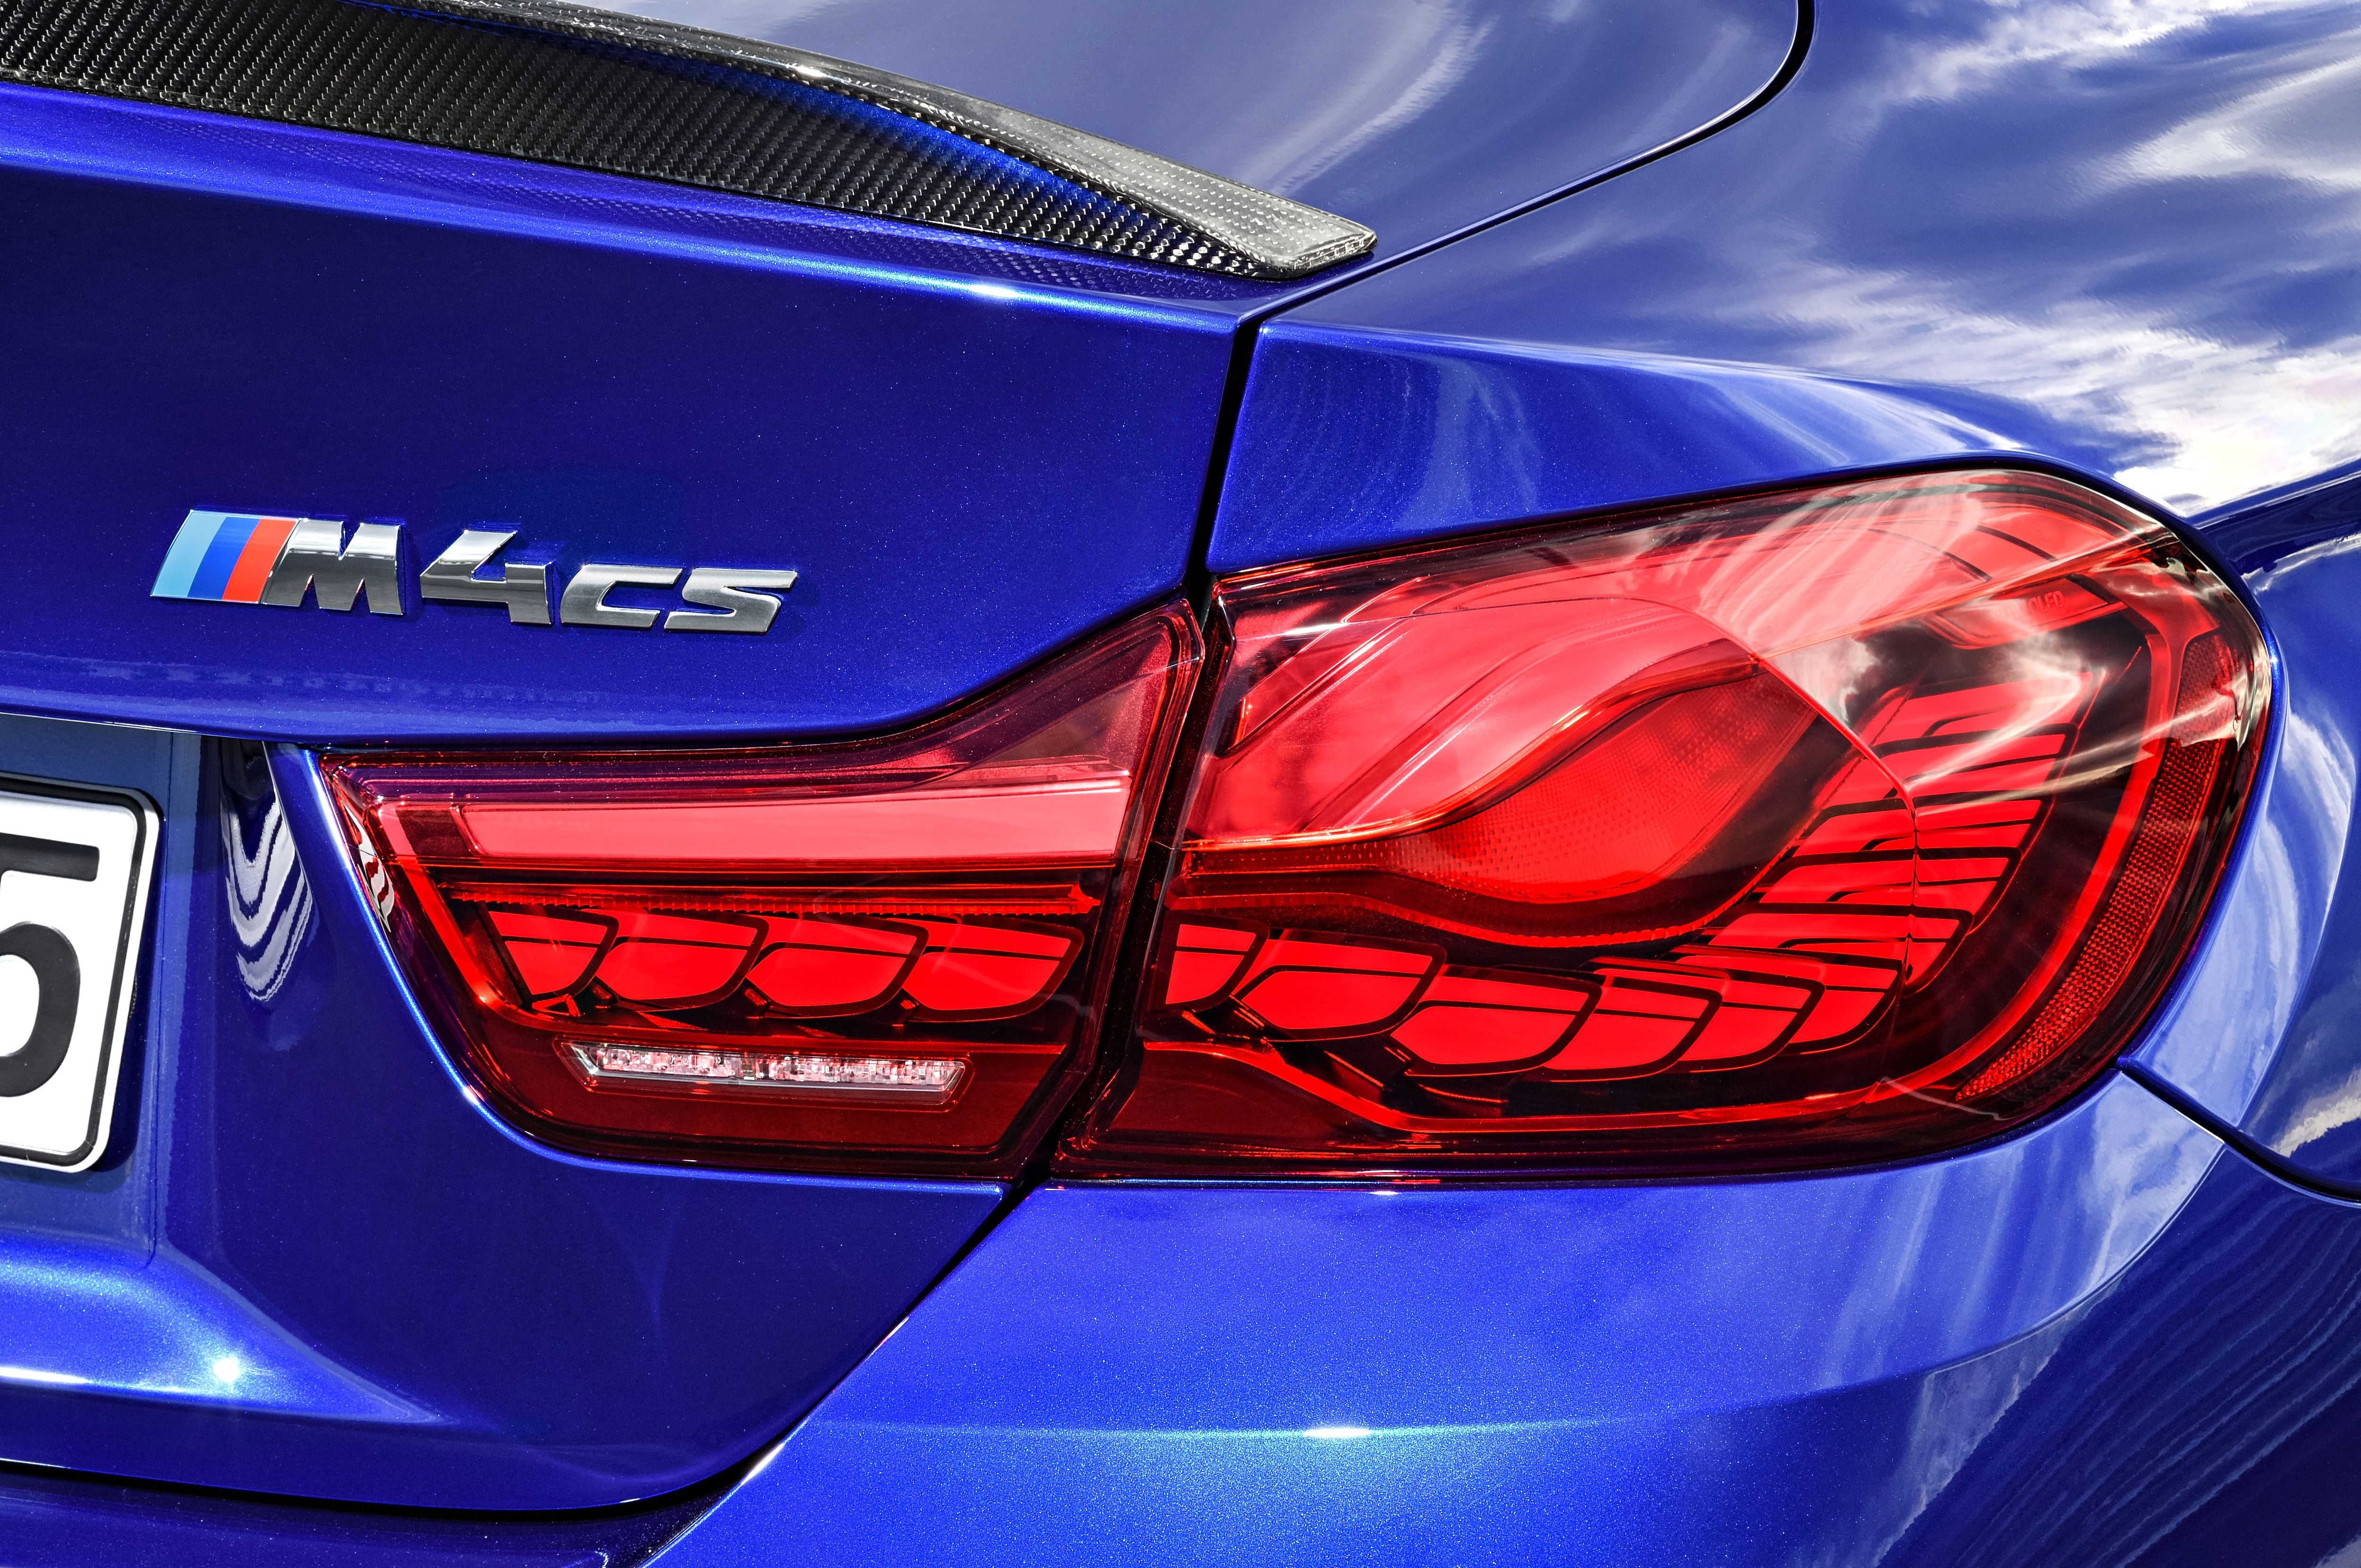 BMW M4 CS badge